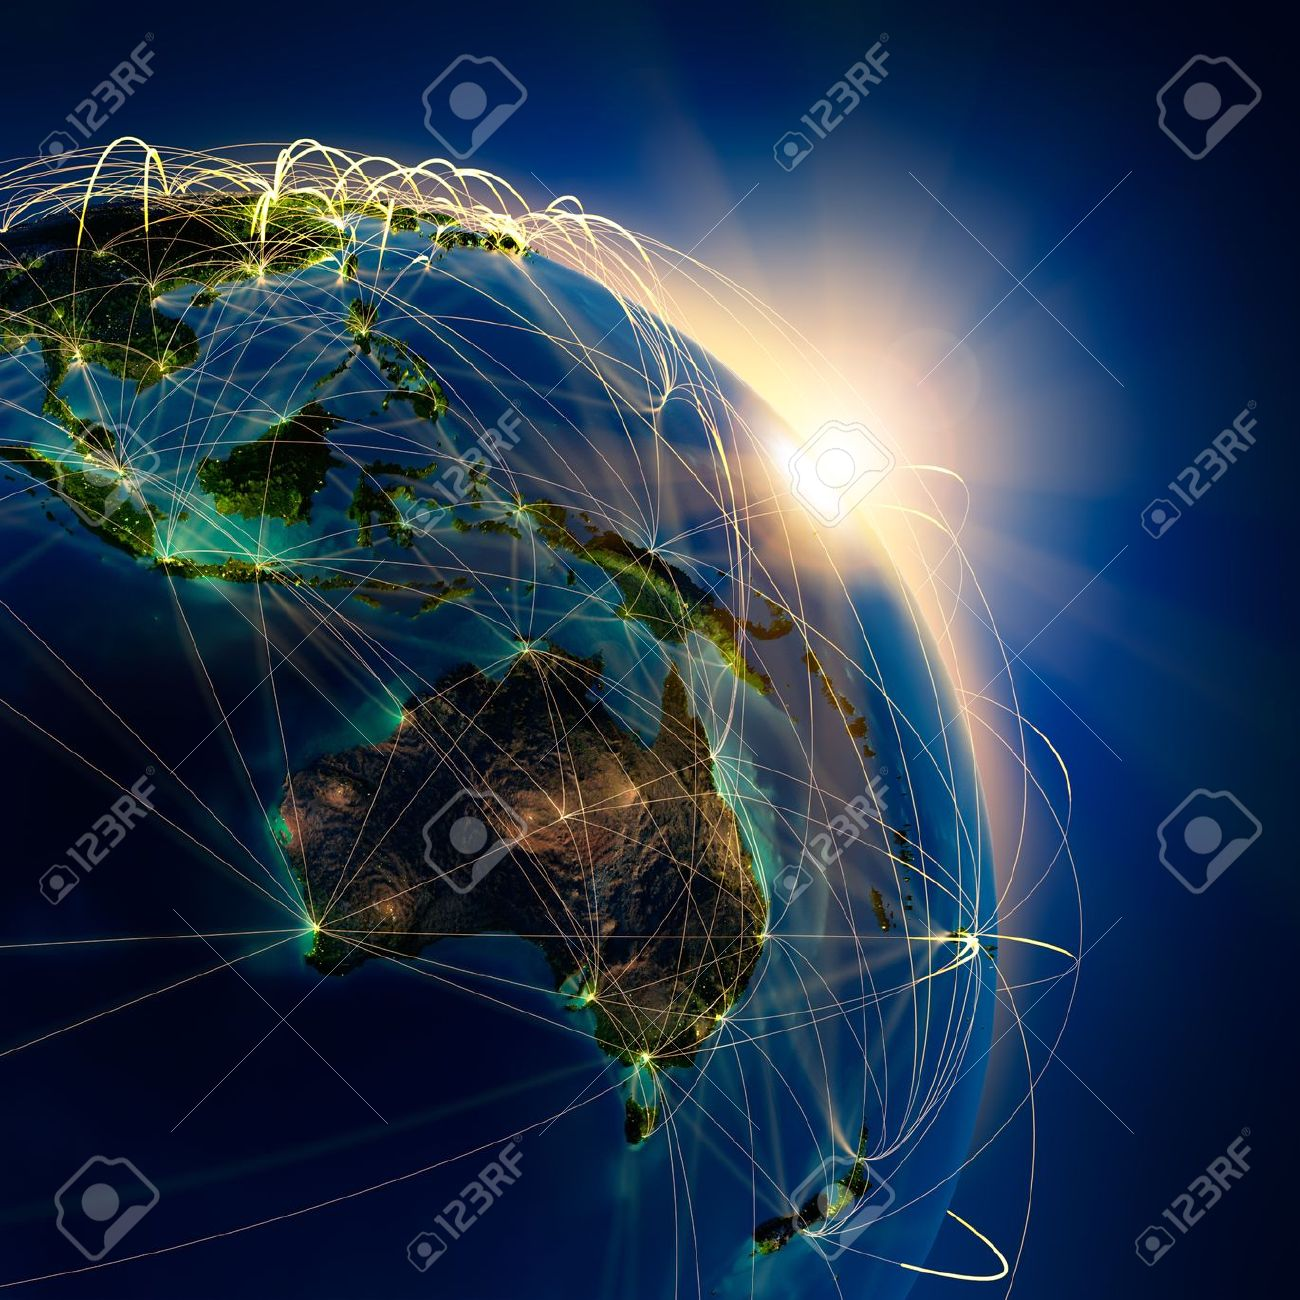 Highly detailed planet Earth at night, lit by the rising sun, with embossed continents, illuminated by light of cities, translucent and reflective ocean. Earth is surrounded by a luminous network, representing the major air routes based on real data - 12305747